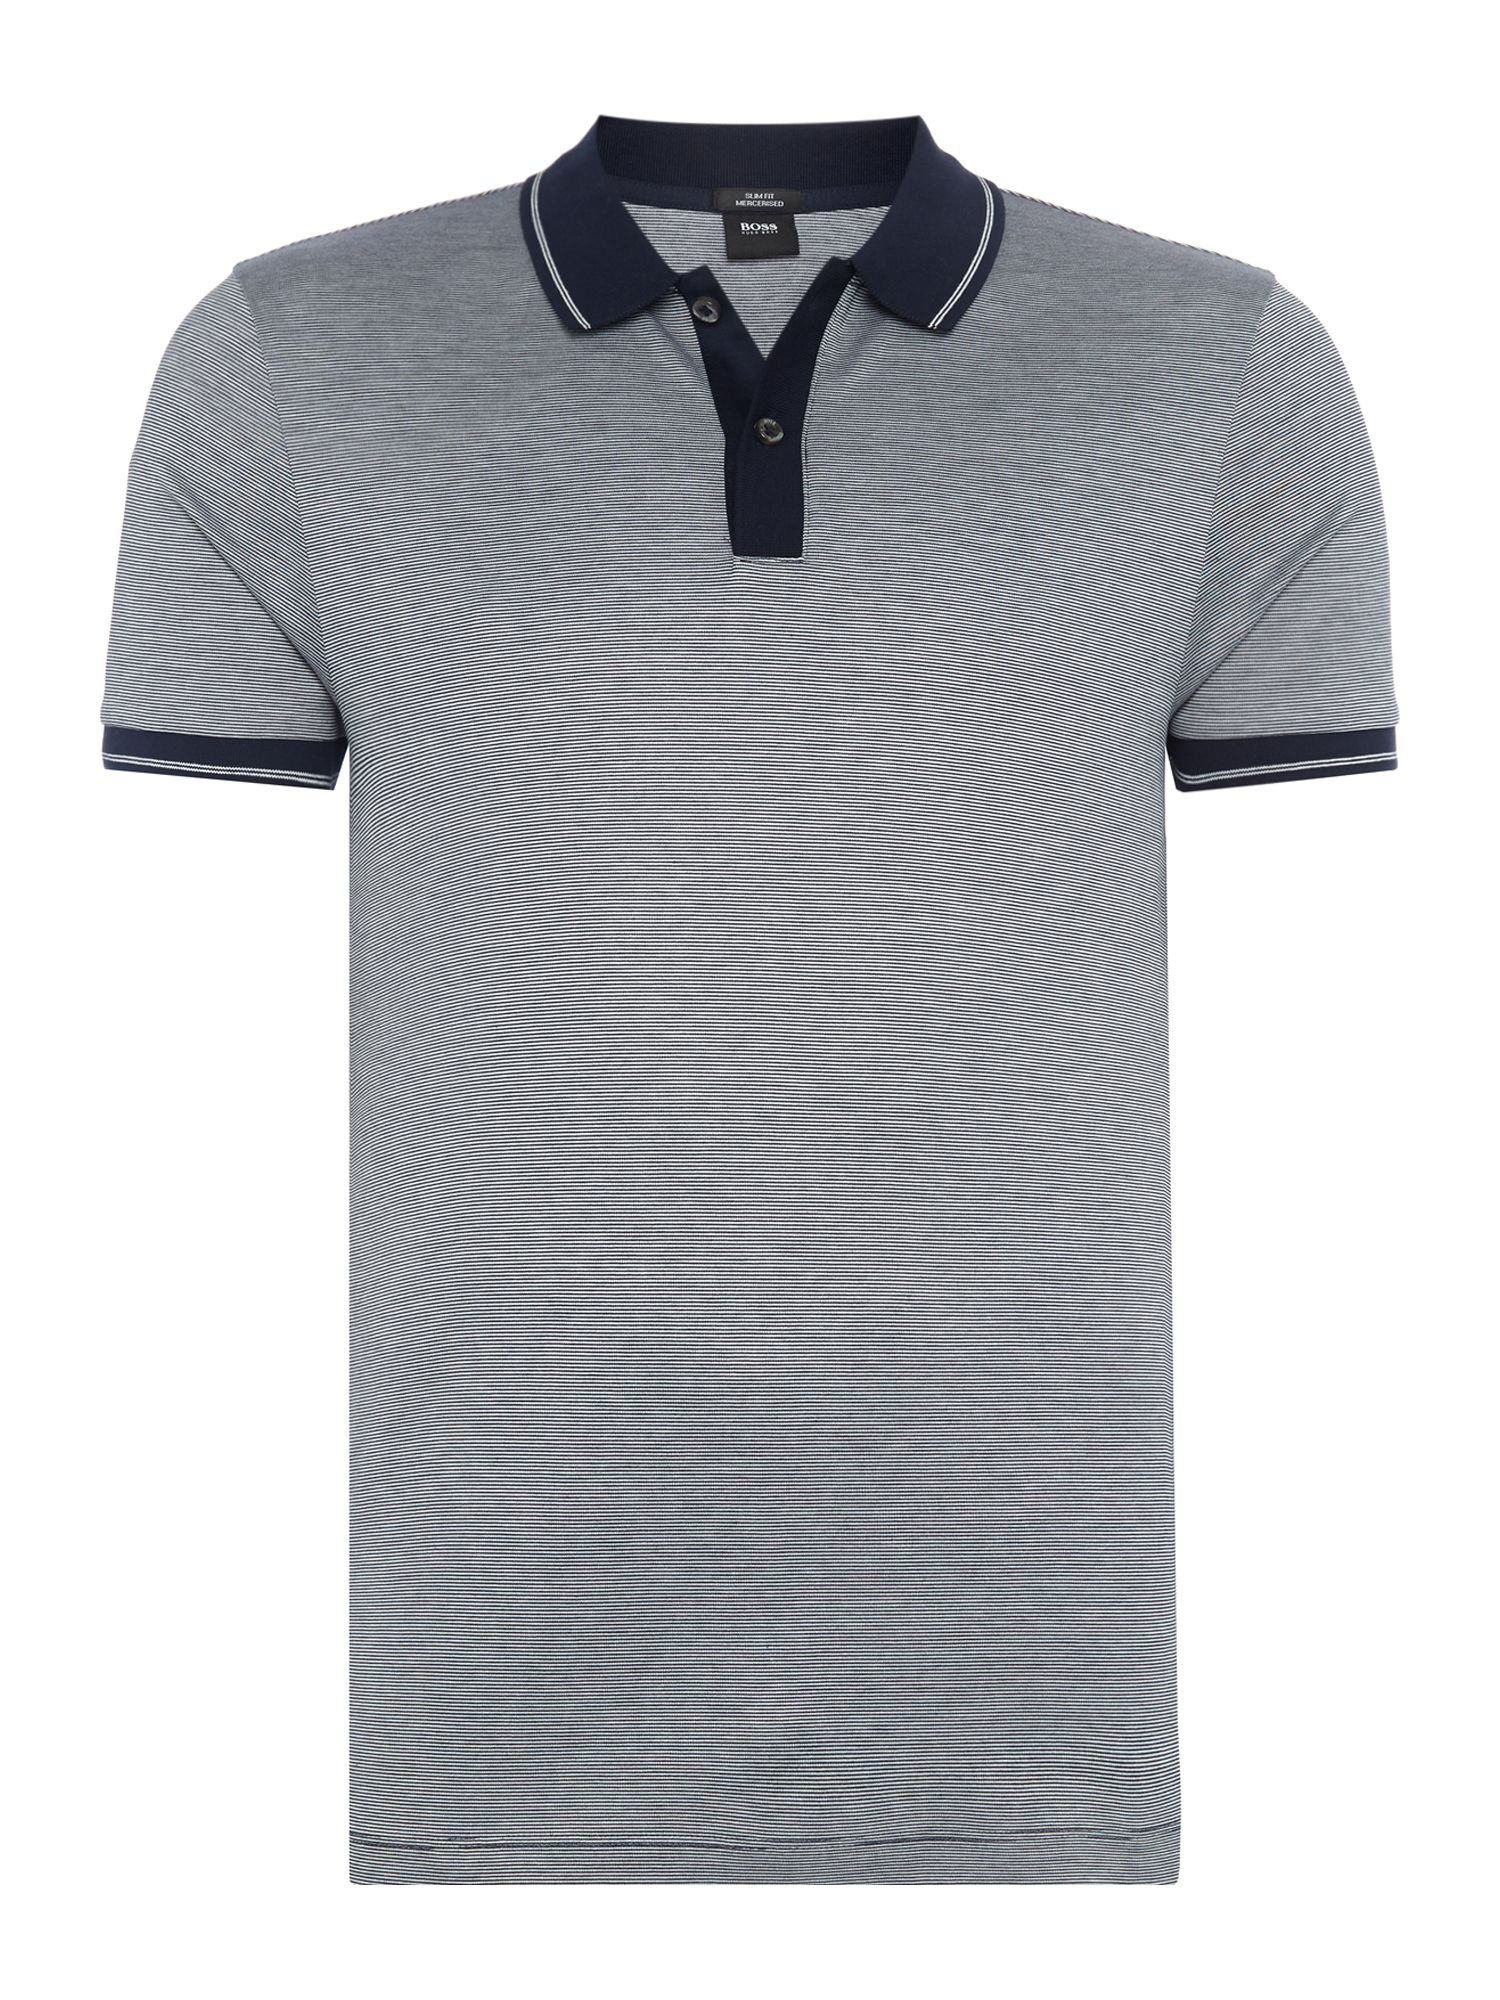 Men's Hugo Boss Phillipson fine stripe polo shirt, Blue